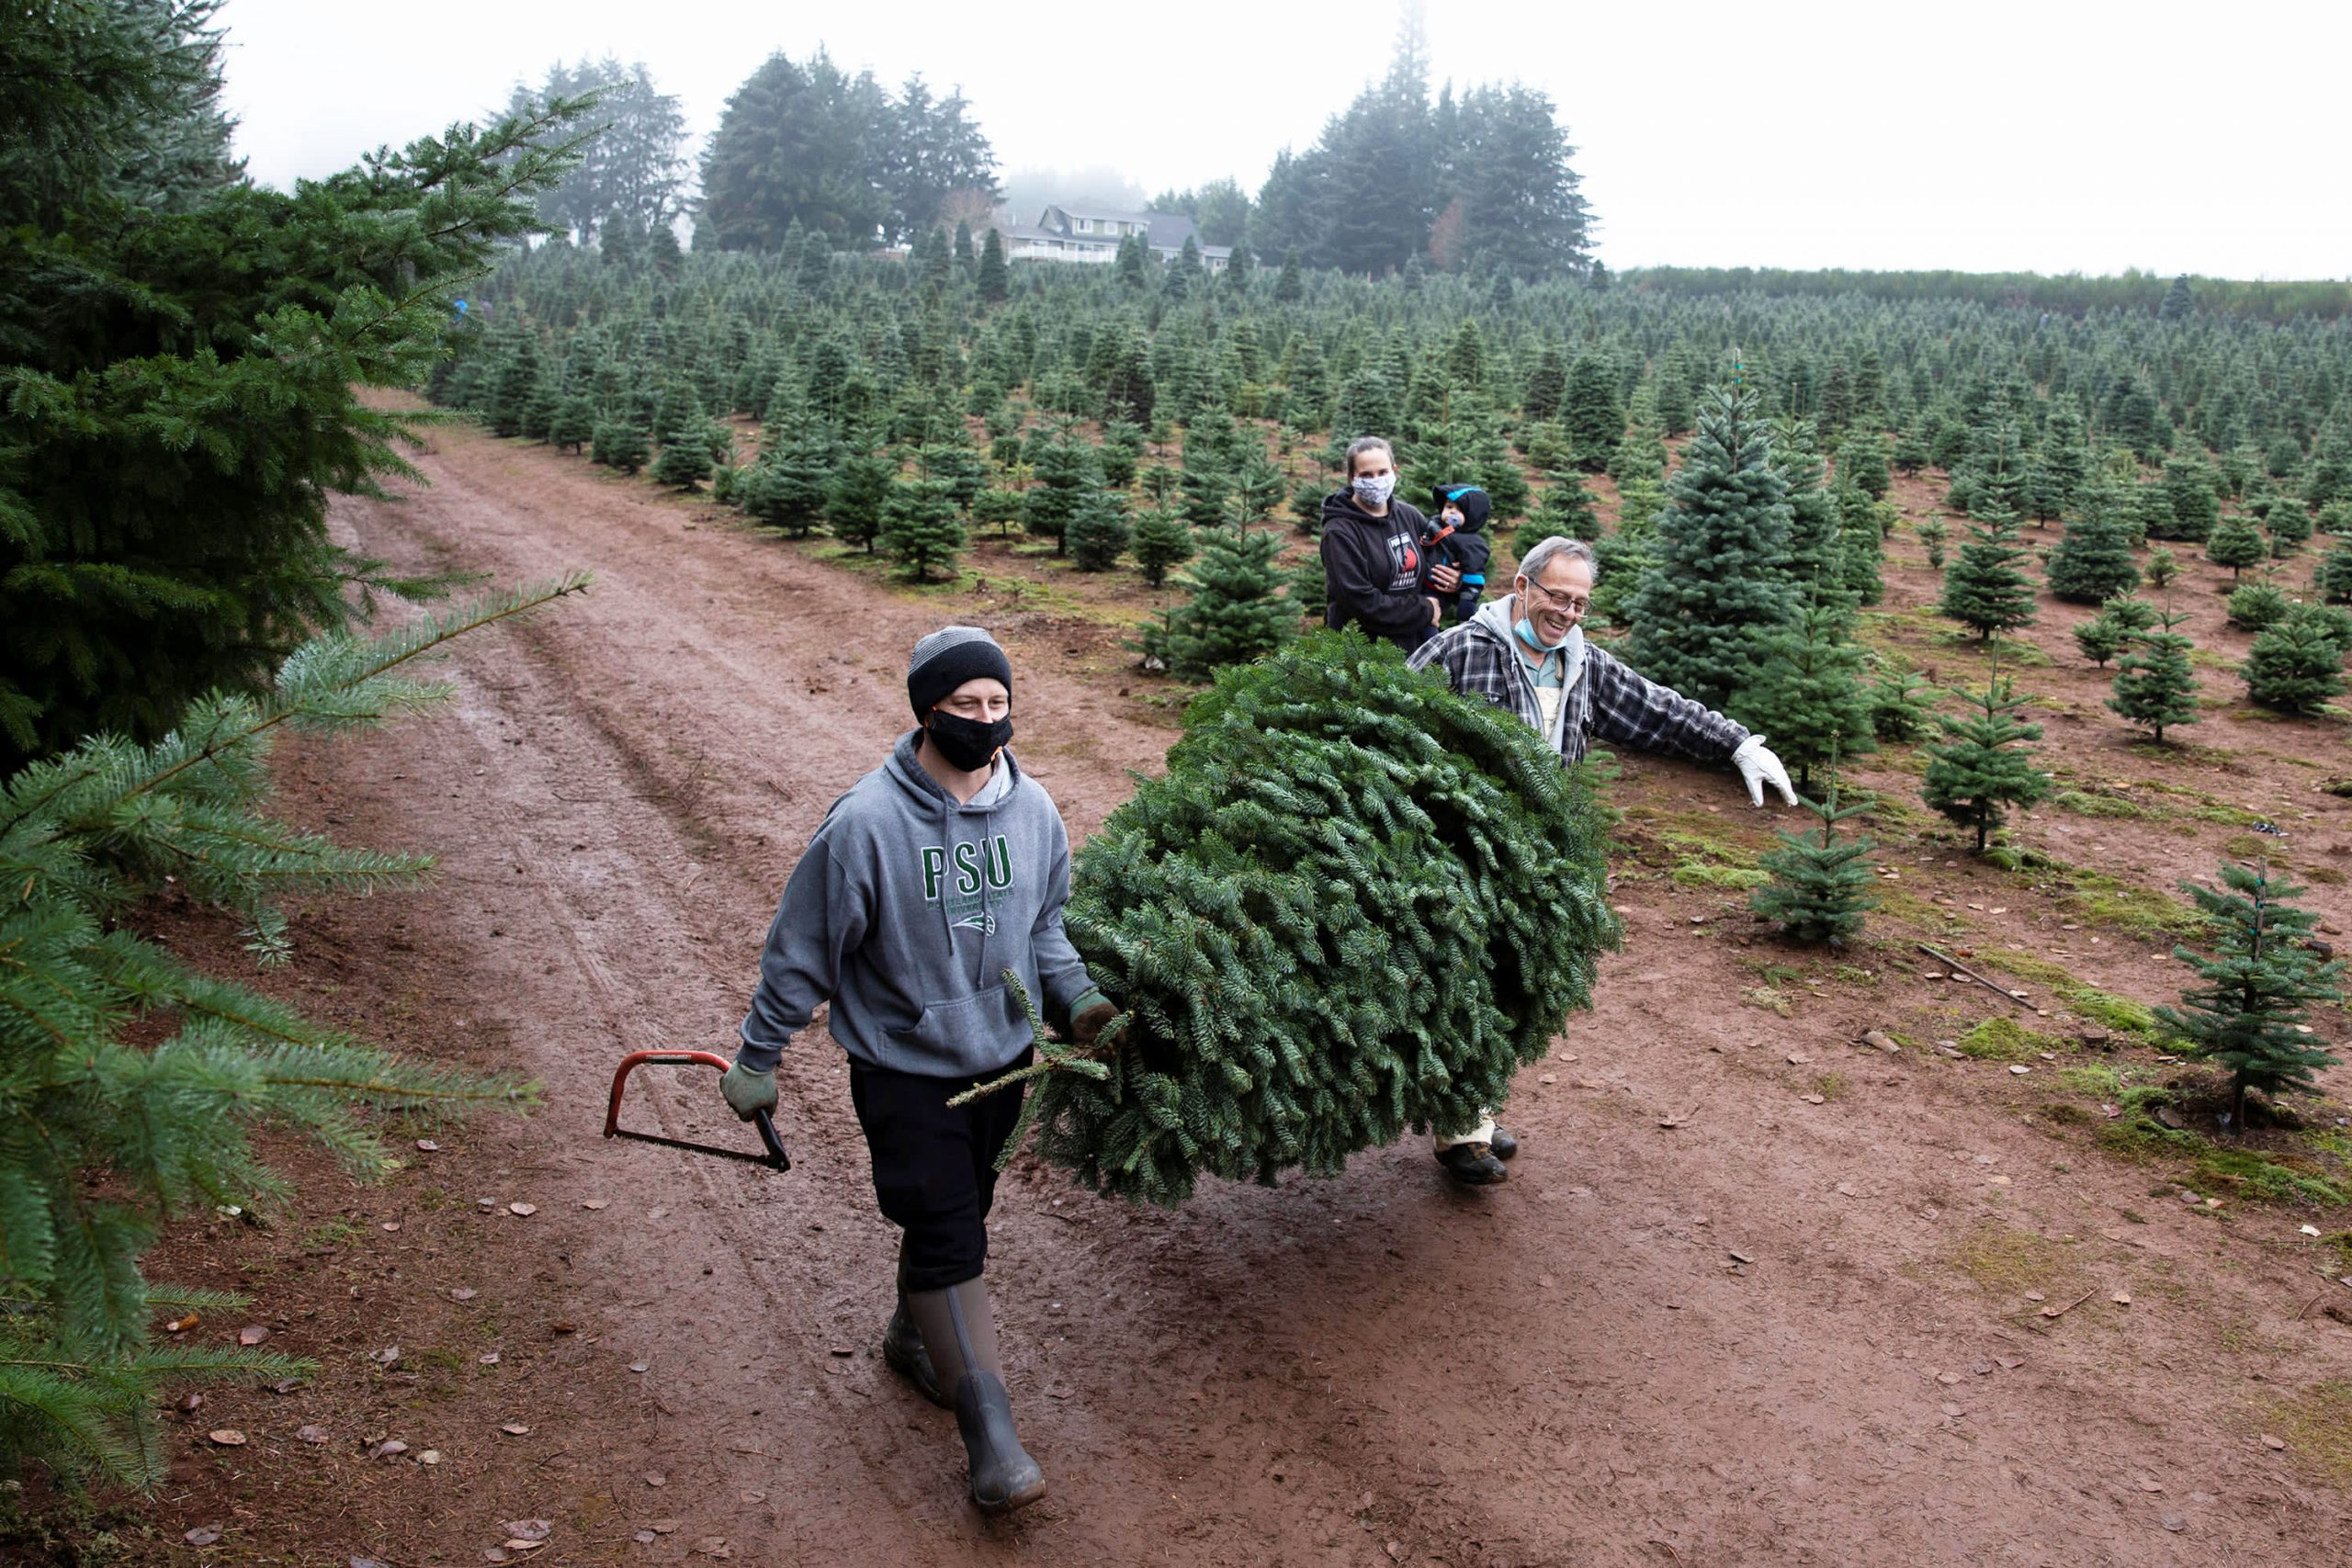 Christmas tree gross sales are telling a holly, jolly financial story